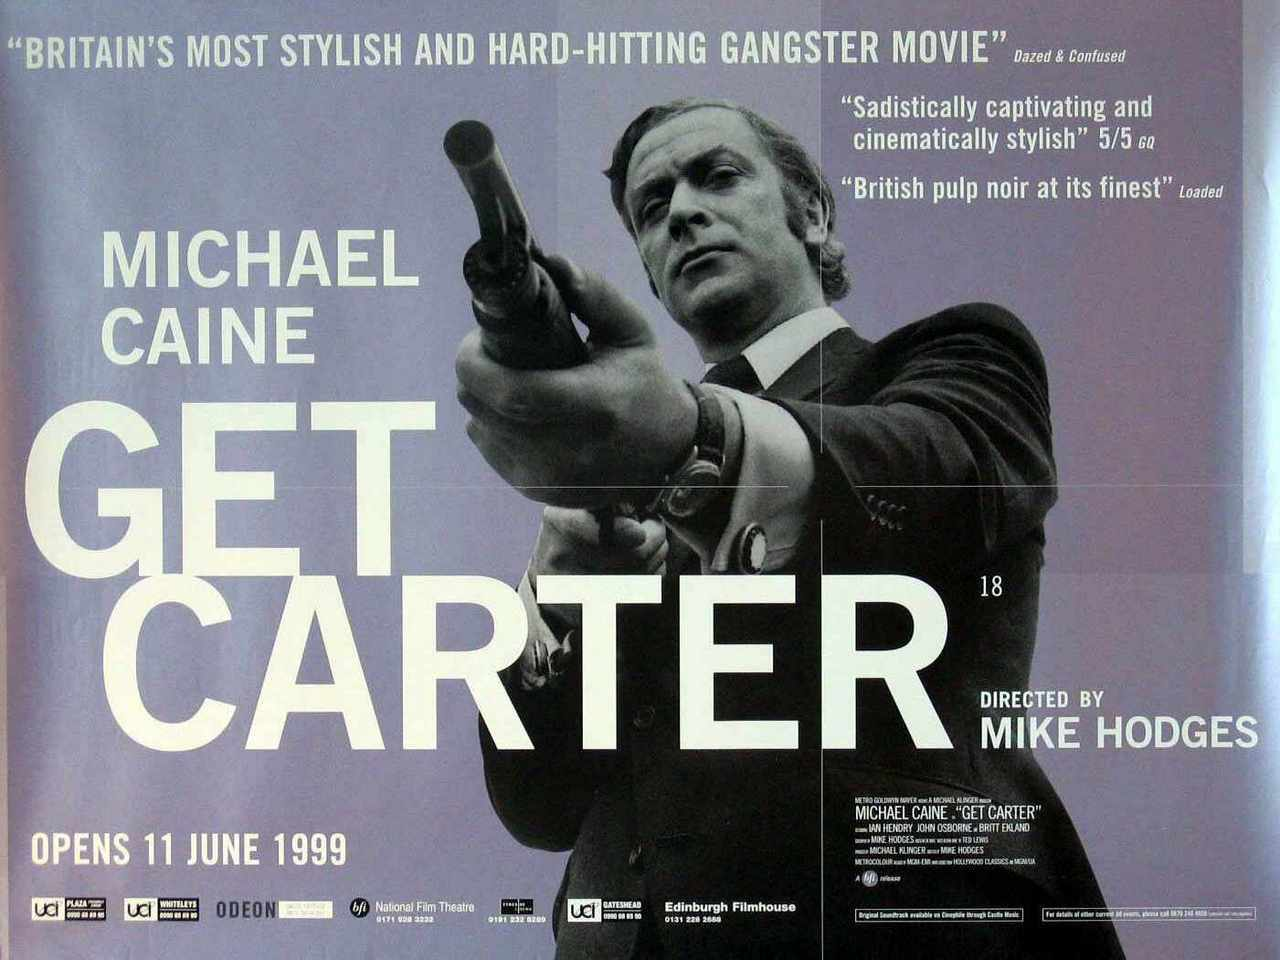 Michael Caine movie posters